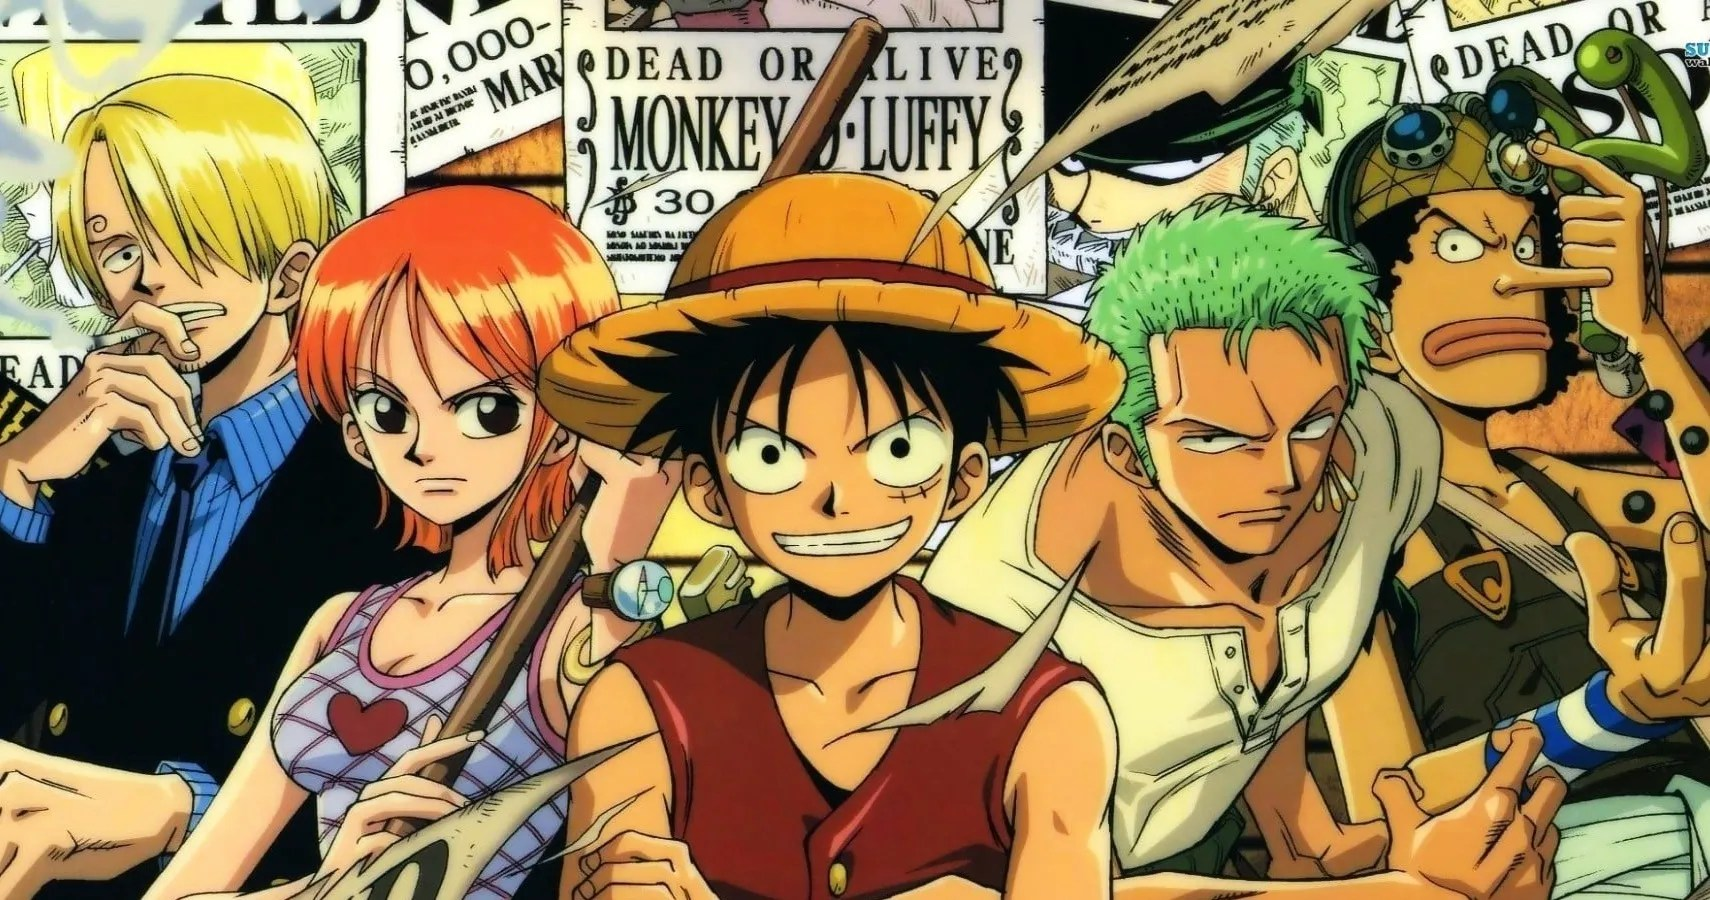 Luffy said he wanted at least 10 people to join him. One Piece 7 Characters Who Could Join The Straw Hat Crew Before The Series Ends 8 Who Never Would